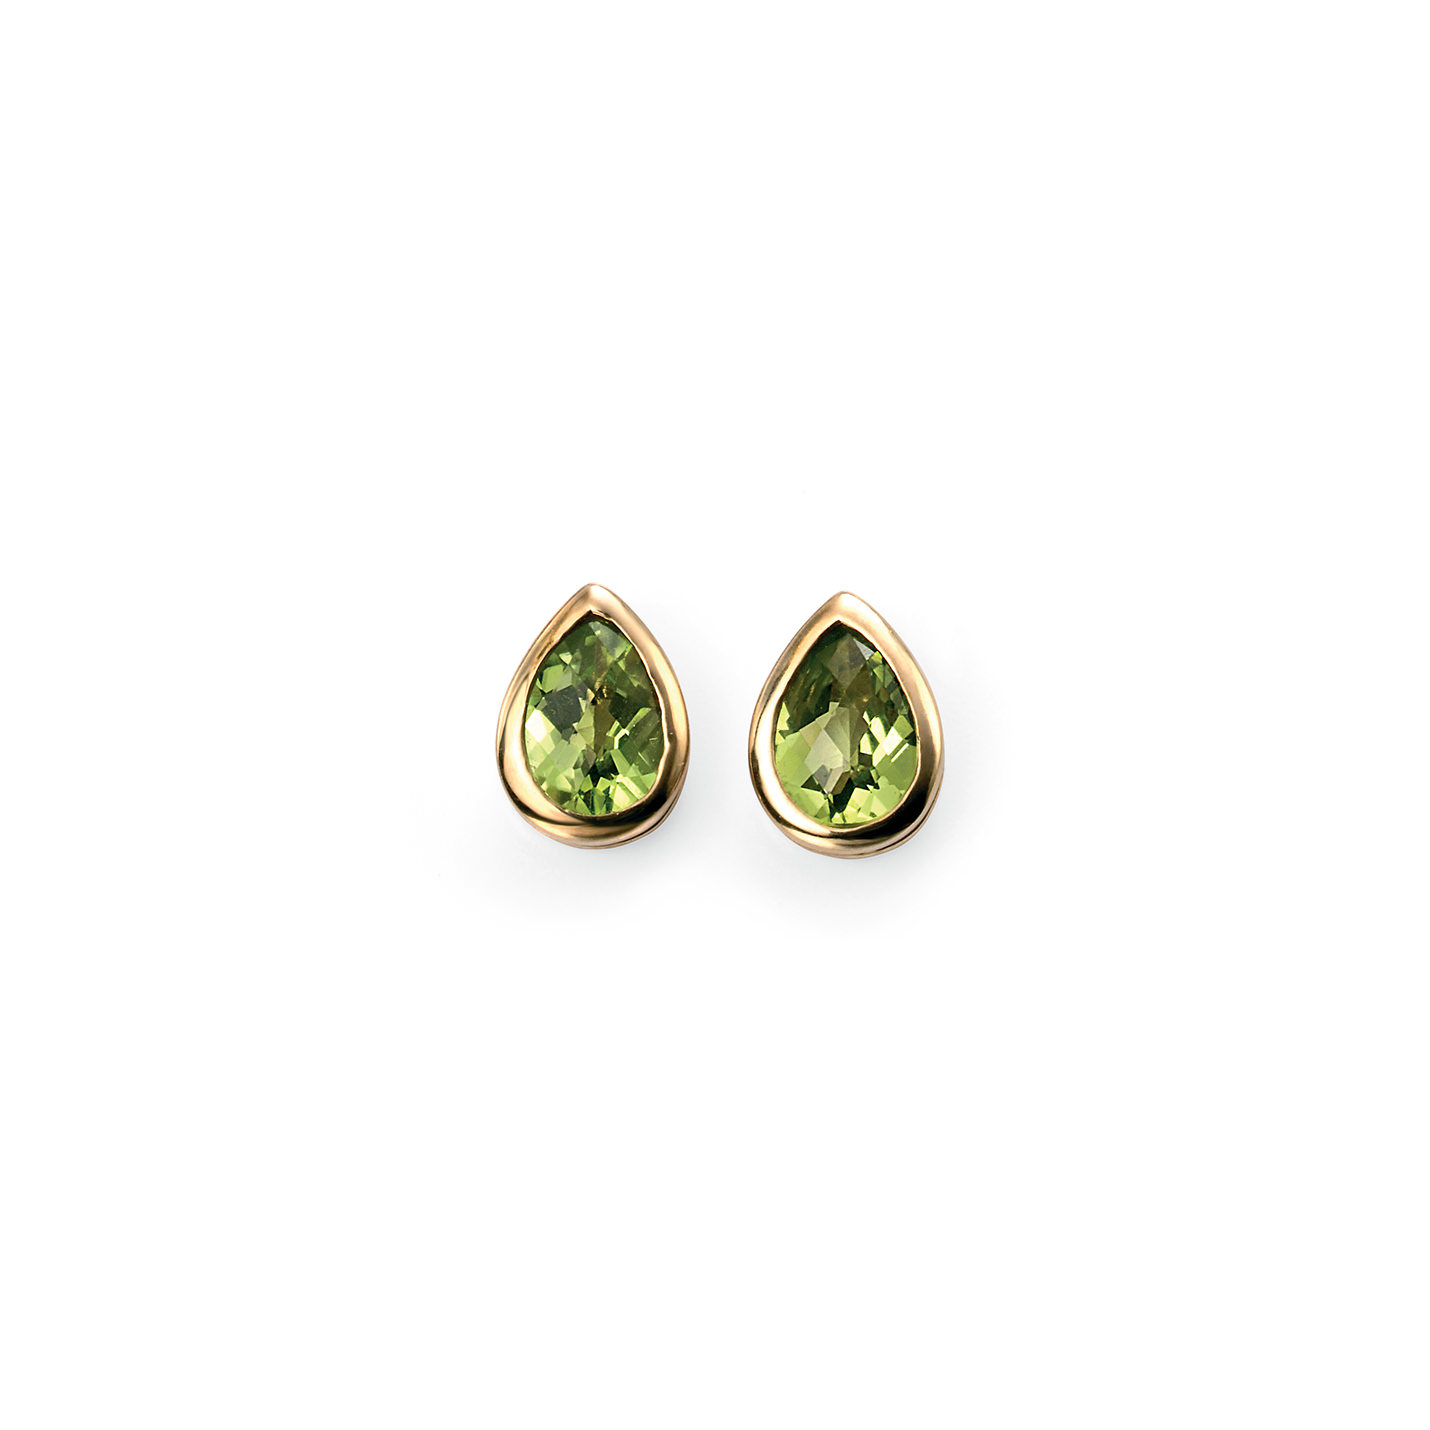 Vibrant green peridot gemstones set in a beautiful 9ct. yellow gold tear drop shape make for the perfect set of earrings.  Width: